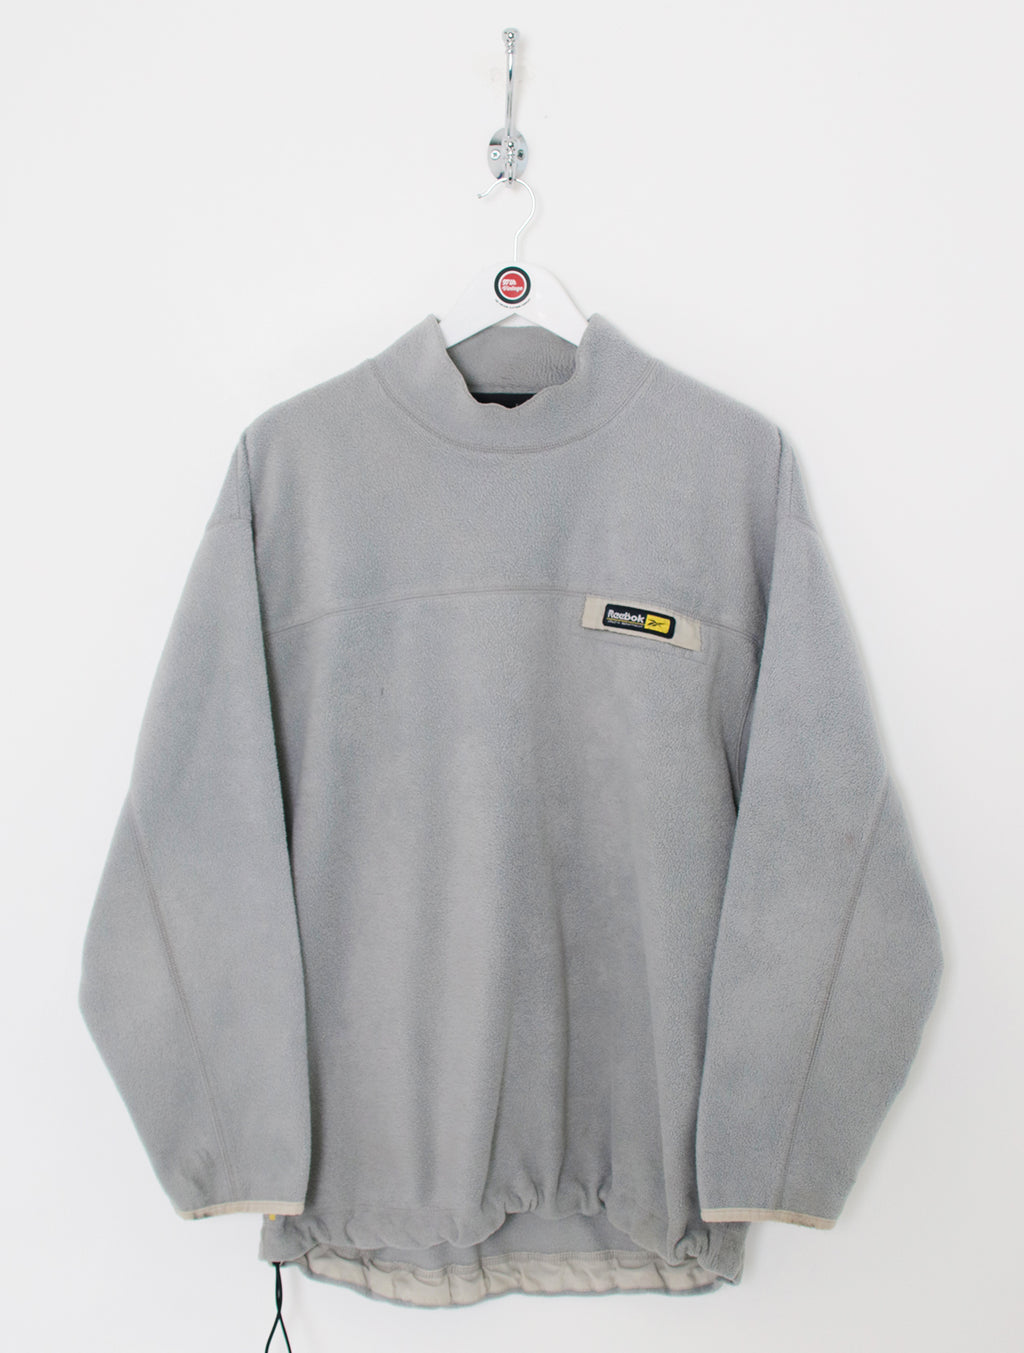 Reebok Fleece (L)